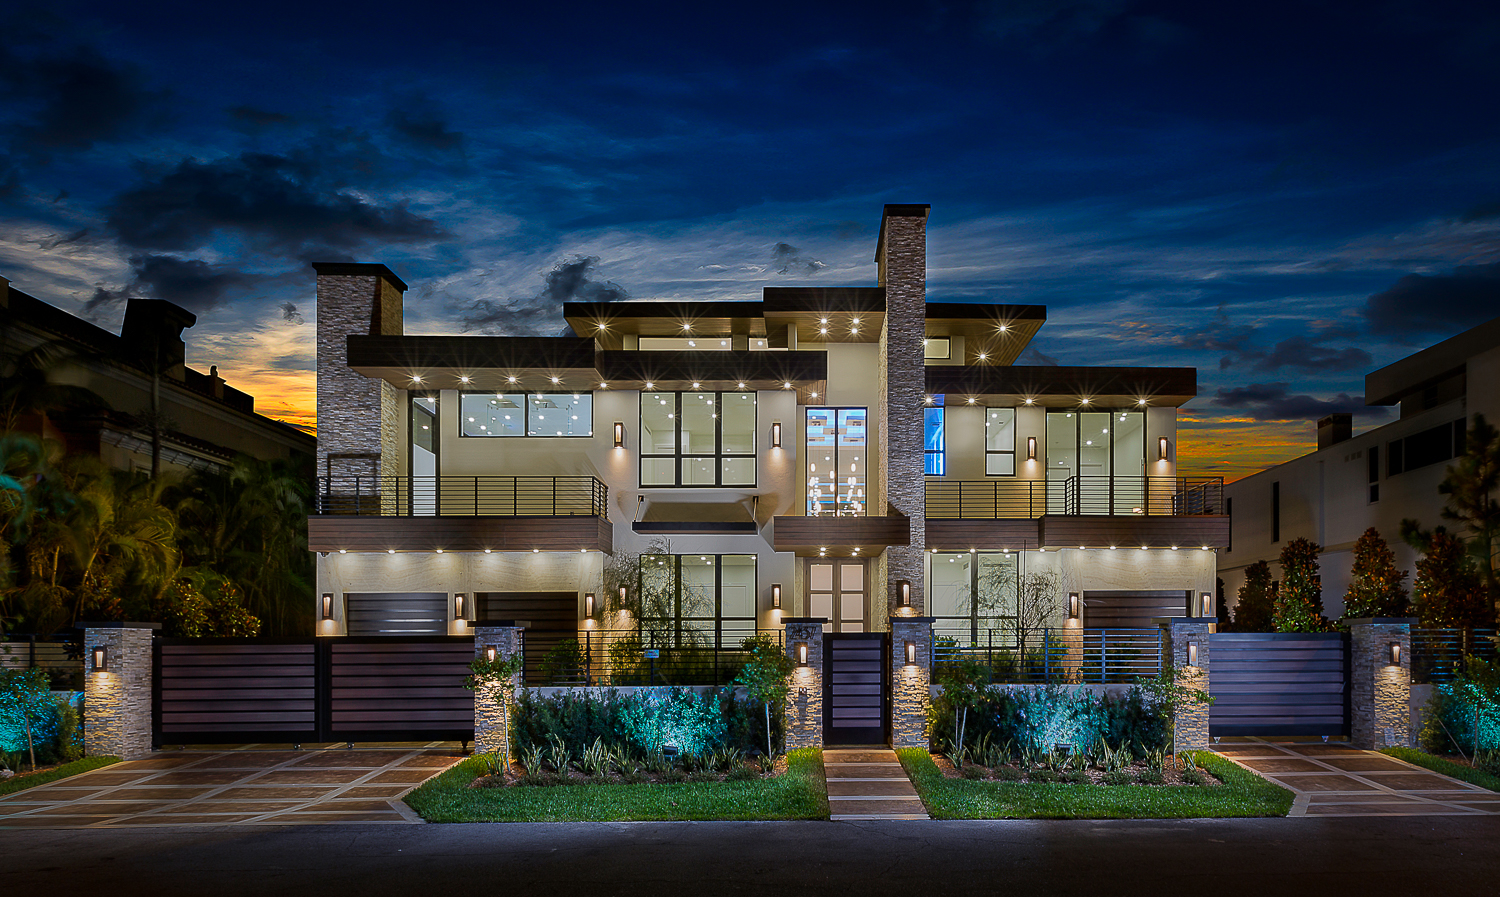 New project -just completed in October 2016.2437 Delmar Place - 3-story house located in Las Olas. 102' waterfront, oversized lot 102.5'x120', 8000 sq. ft A/C, 12,400 sq. ft total7 bedrooms including 2 masters, office, media room, gym, 2nd and 3rd floor loft, roof terrace, 7 full bathrooms, 2 half bathrooms, elevator.New seawall and concrete dock, fantastic resort pool.